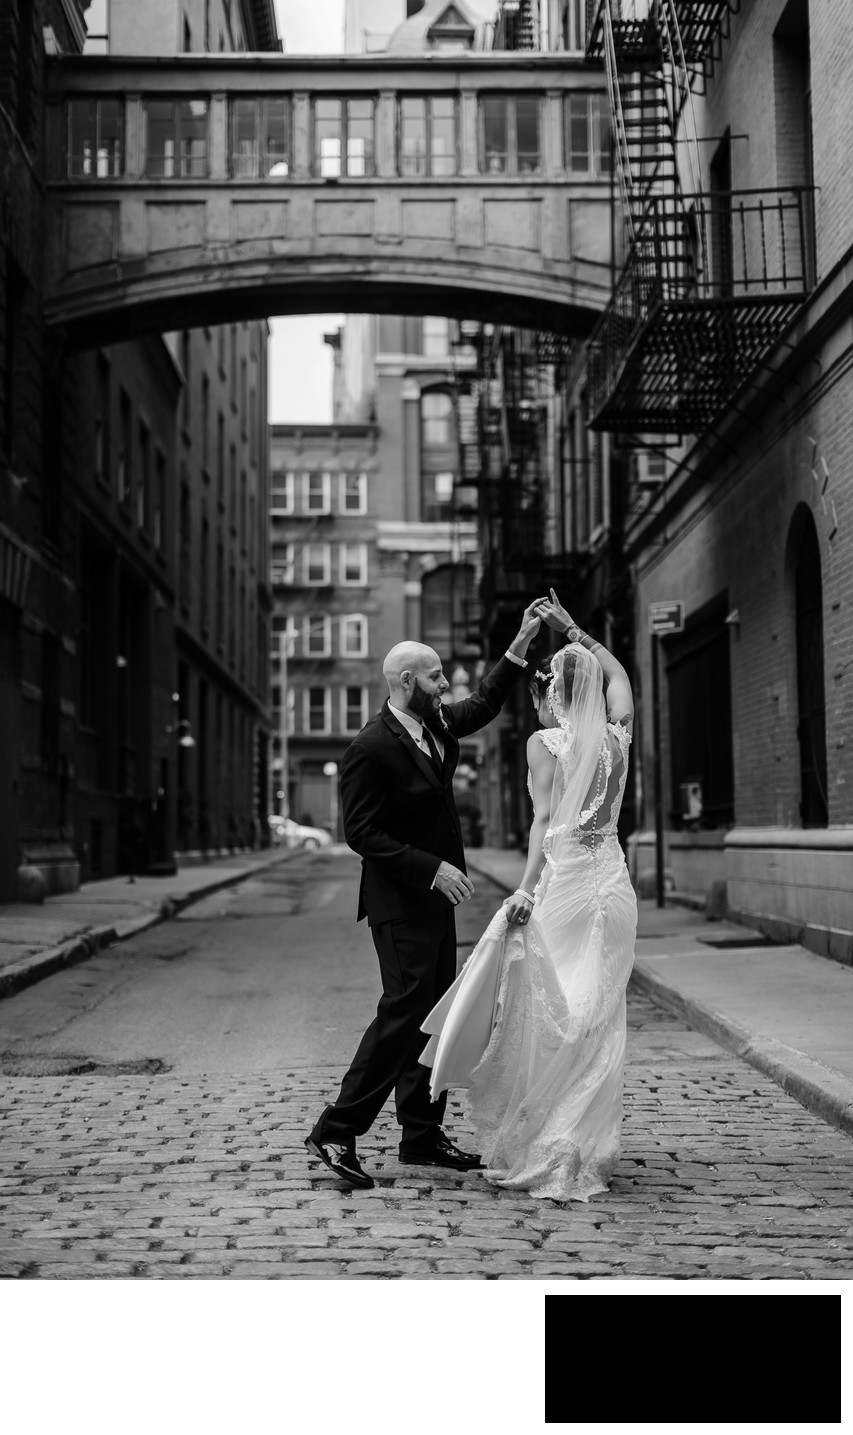 tribeca rooftop wedding photos by seangallery